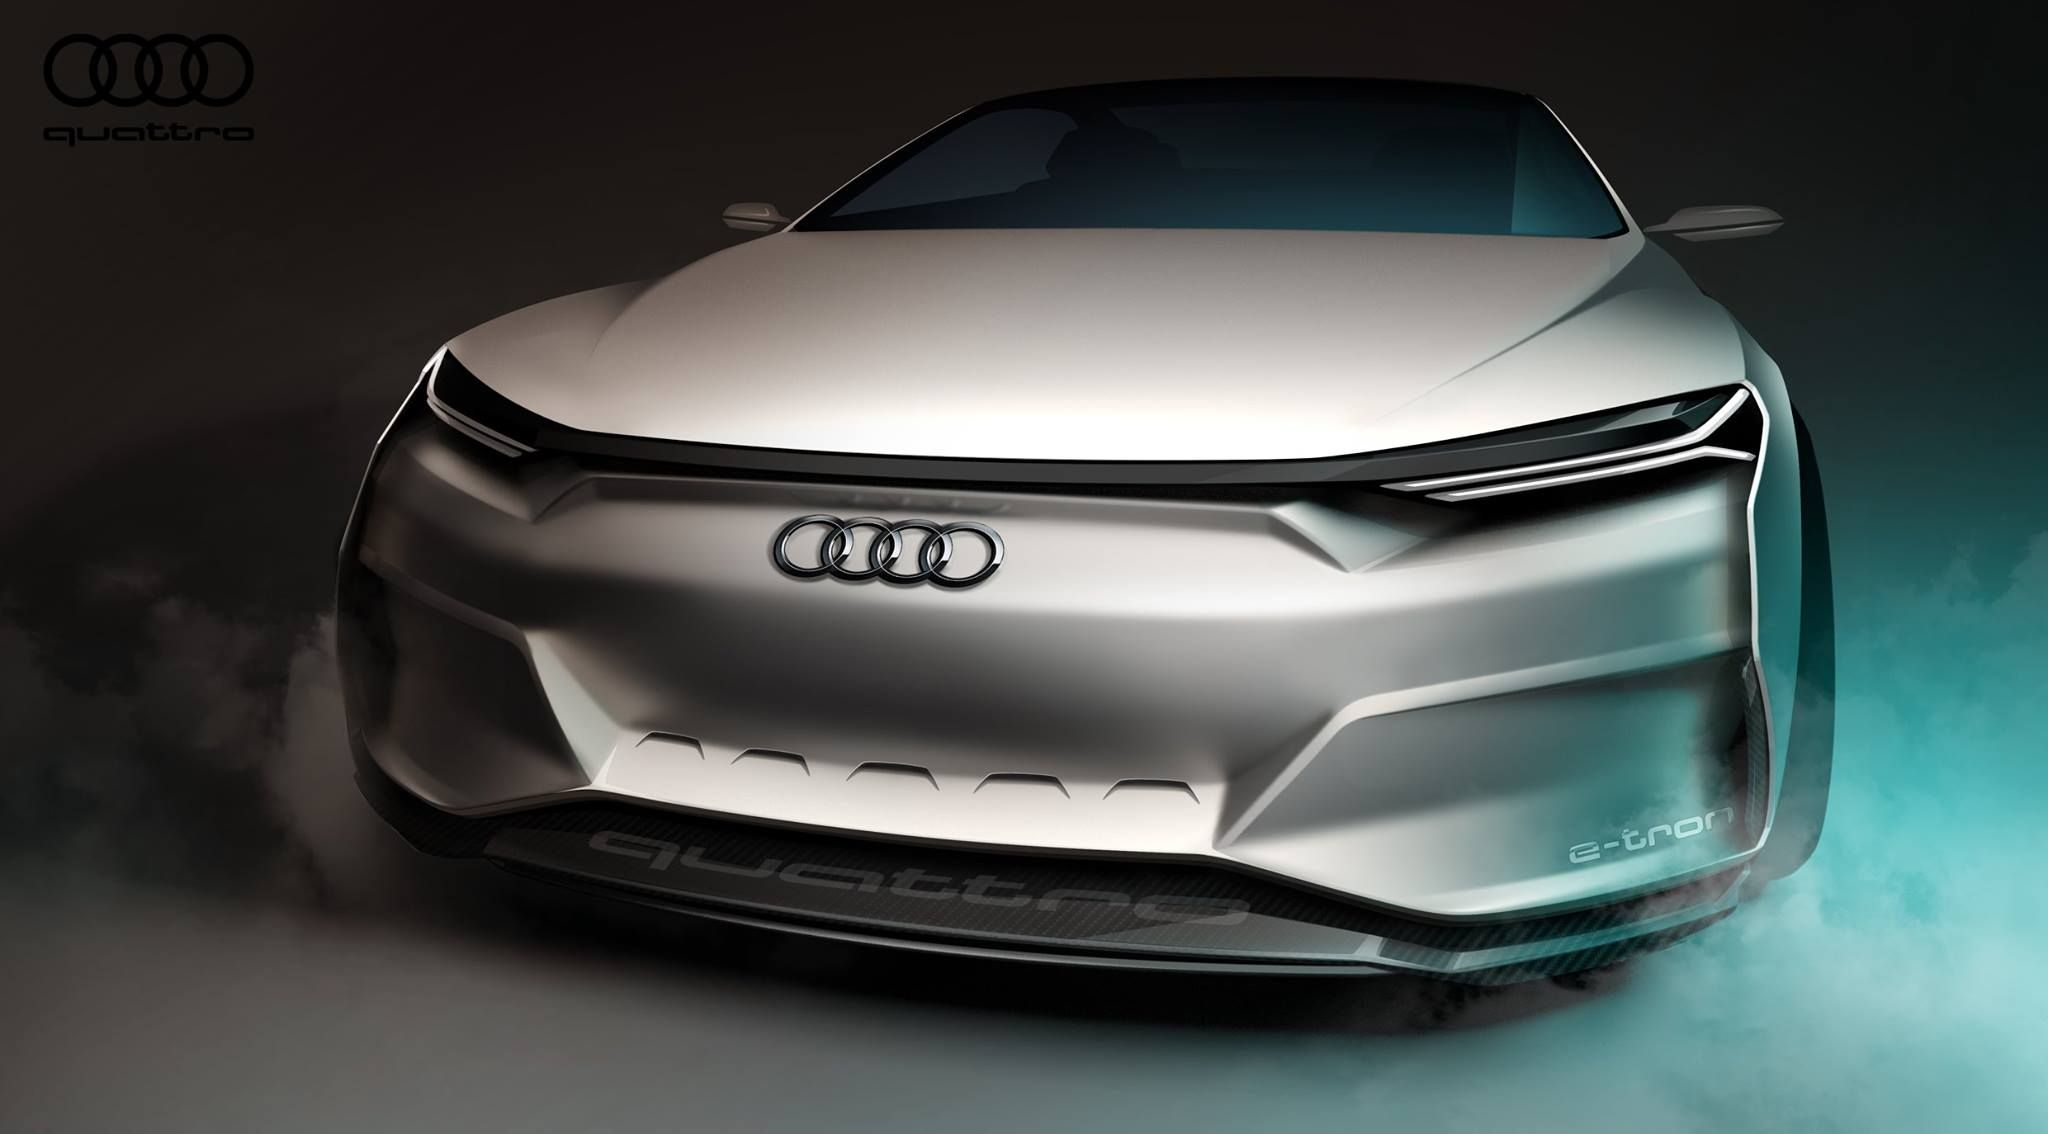 2016 mitsubishi gt phev concept hot sketches pinterest cars sketches and car sketch